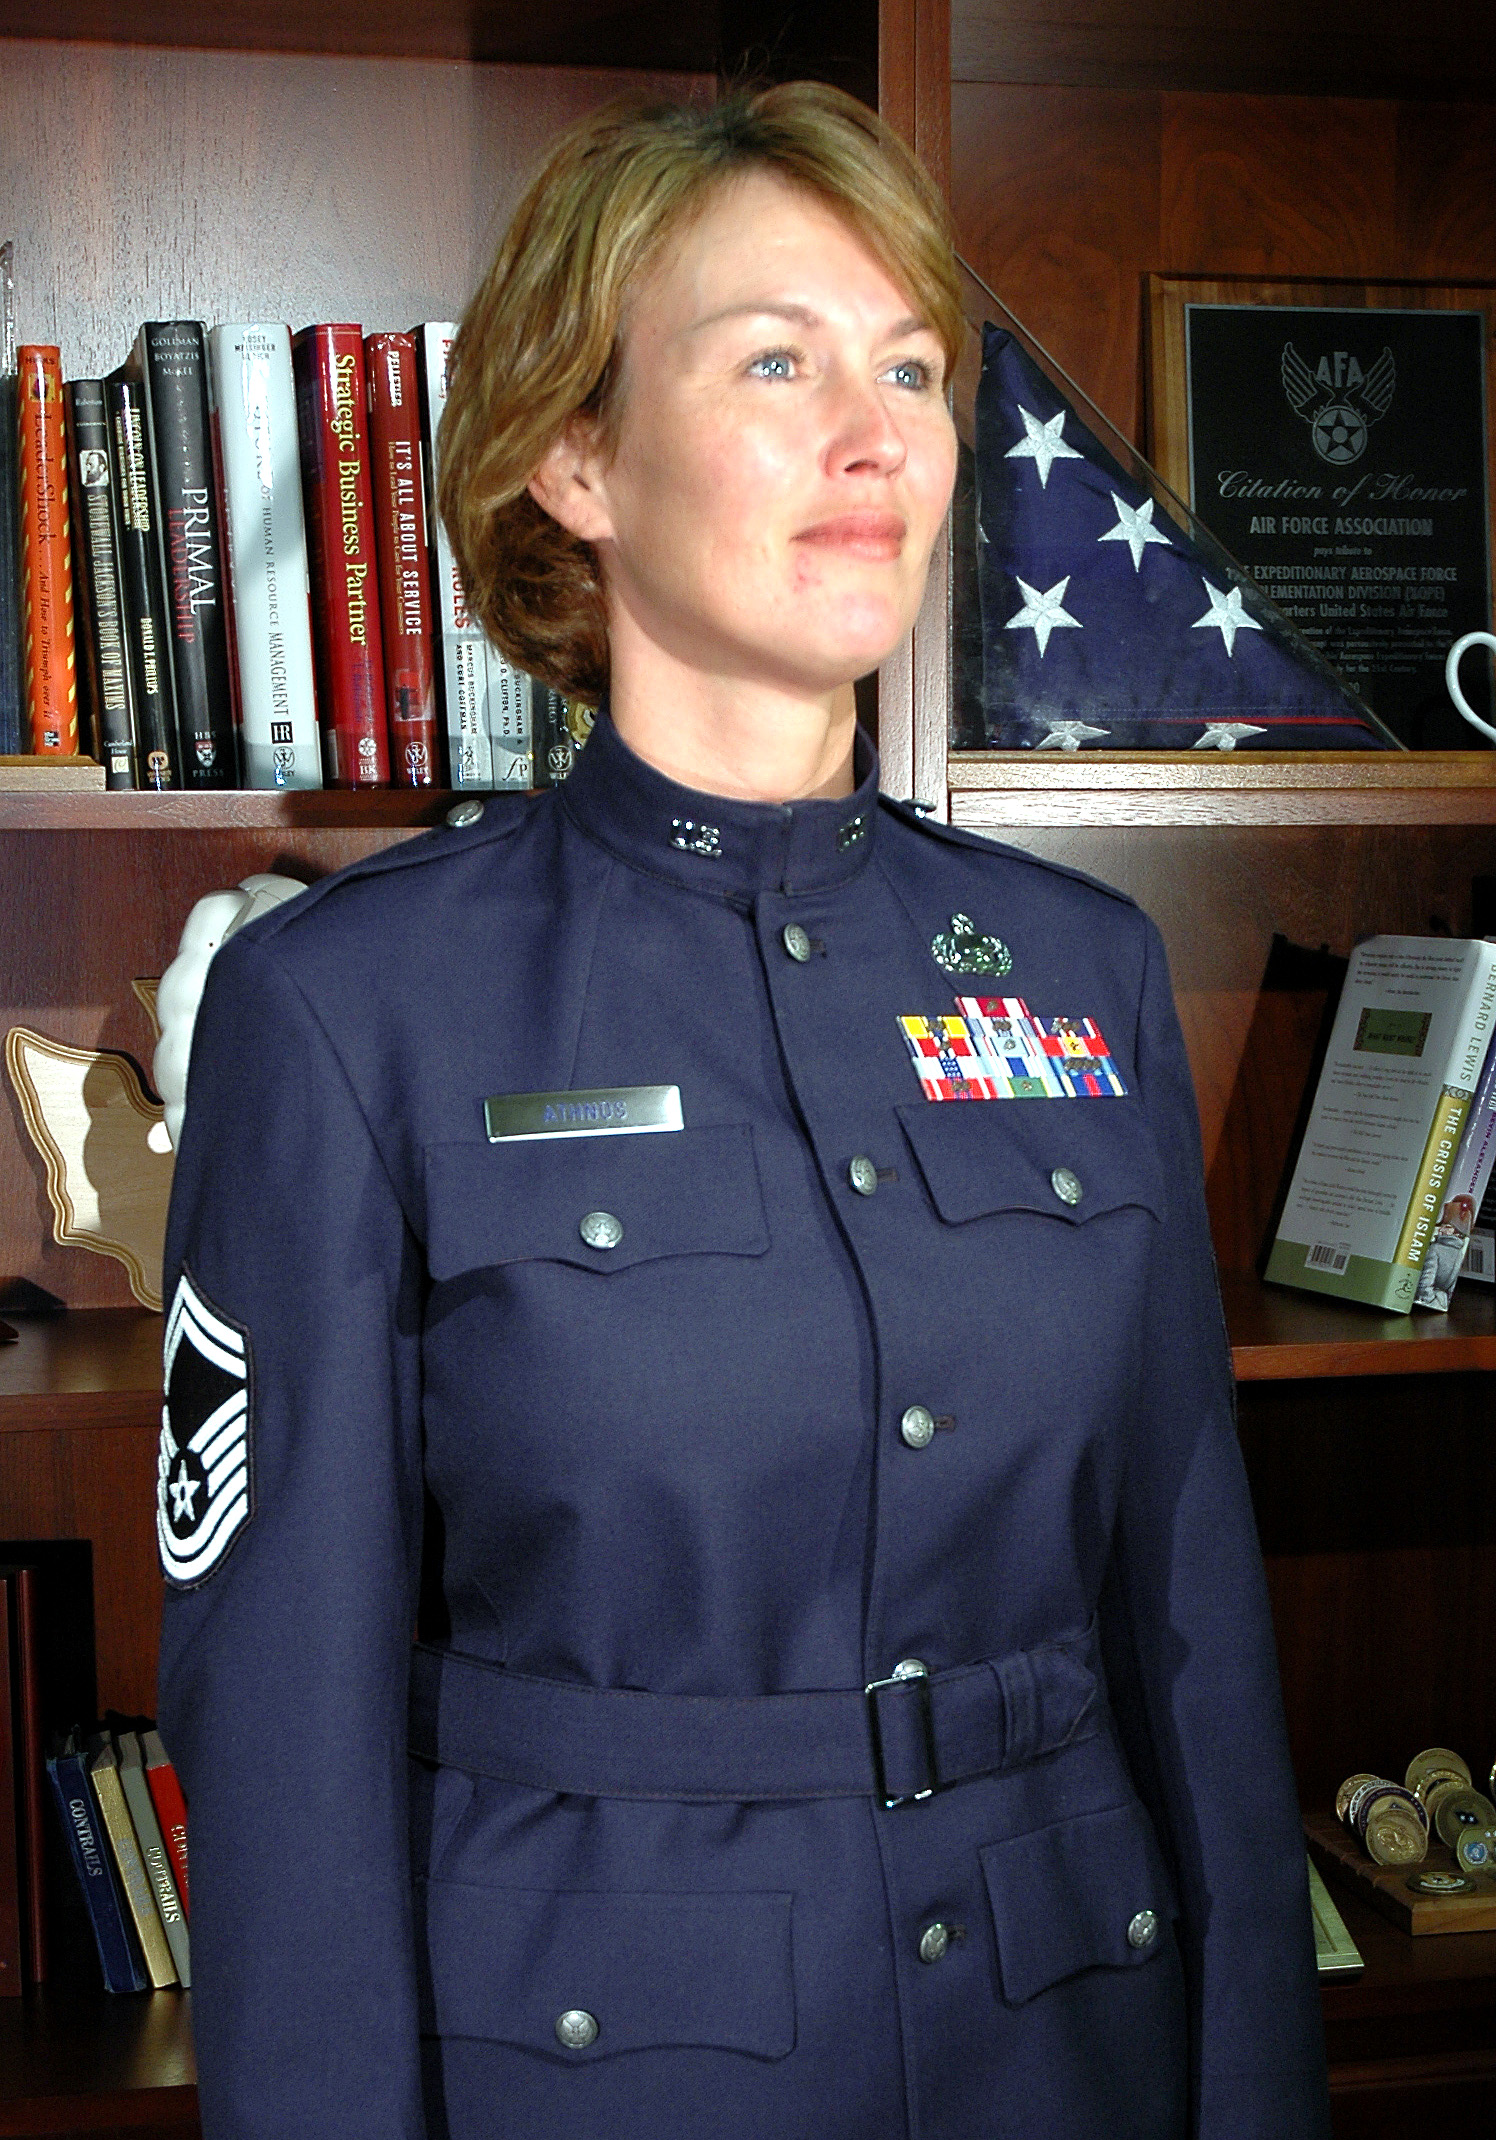 Wonderful Book Of Womens Mess Dress Air Force In Singapore By Sophia U2013 Playzoa.com